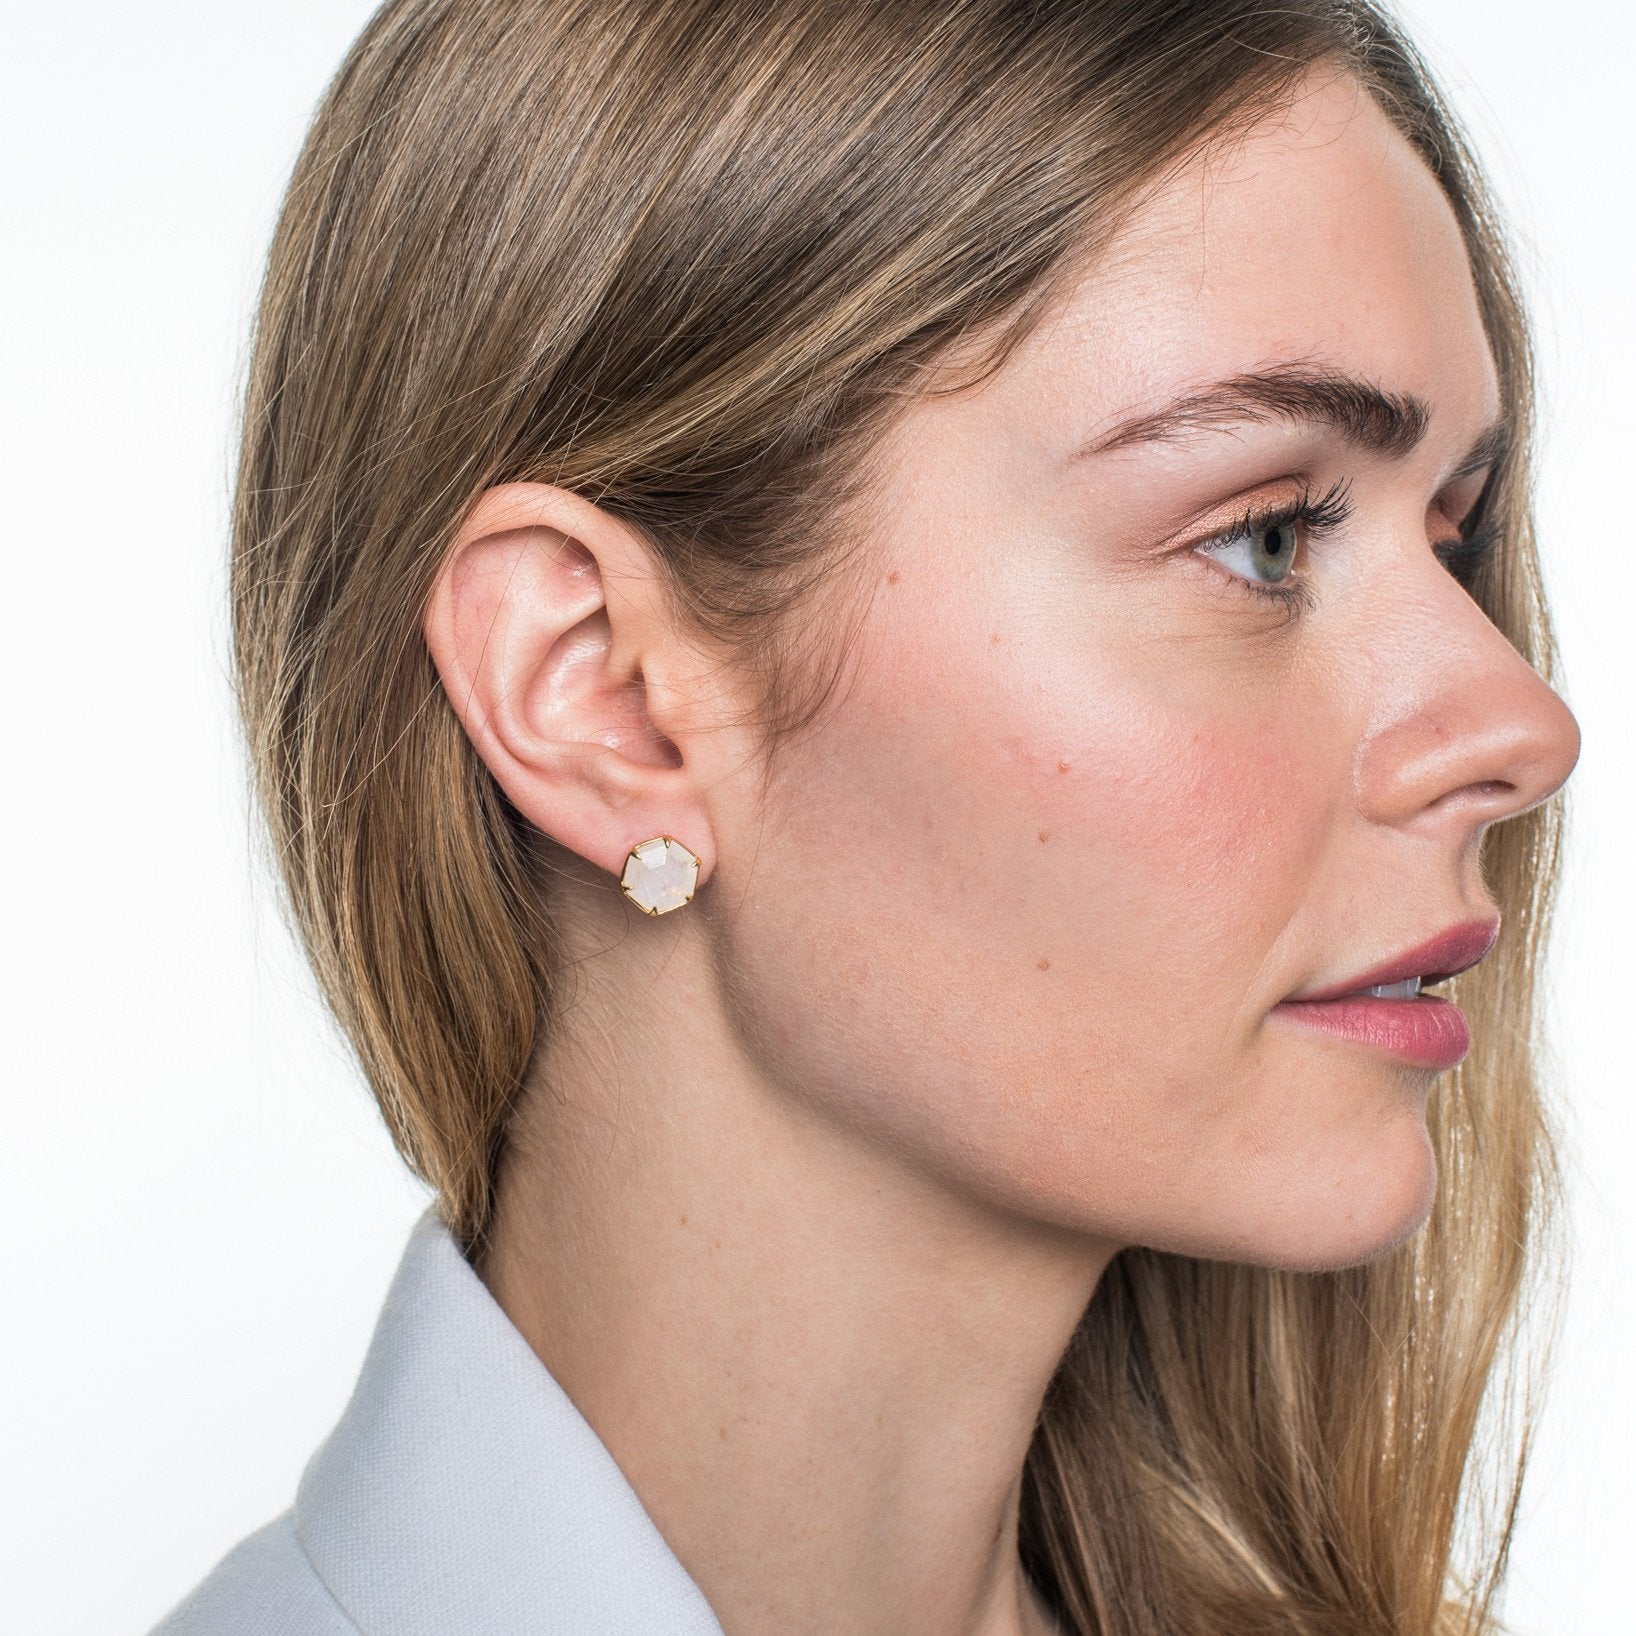 GRACE HEXAGON STUD EARRINGS - RAINBOW MOONSTONE & SILVER - SO PRETTY CARA COTTER